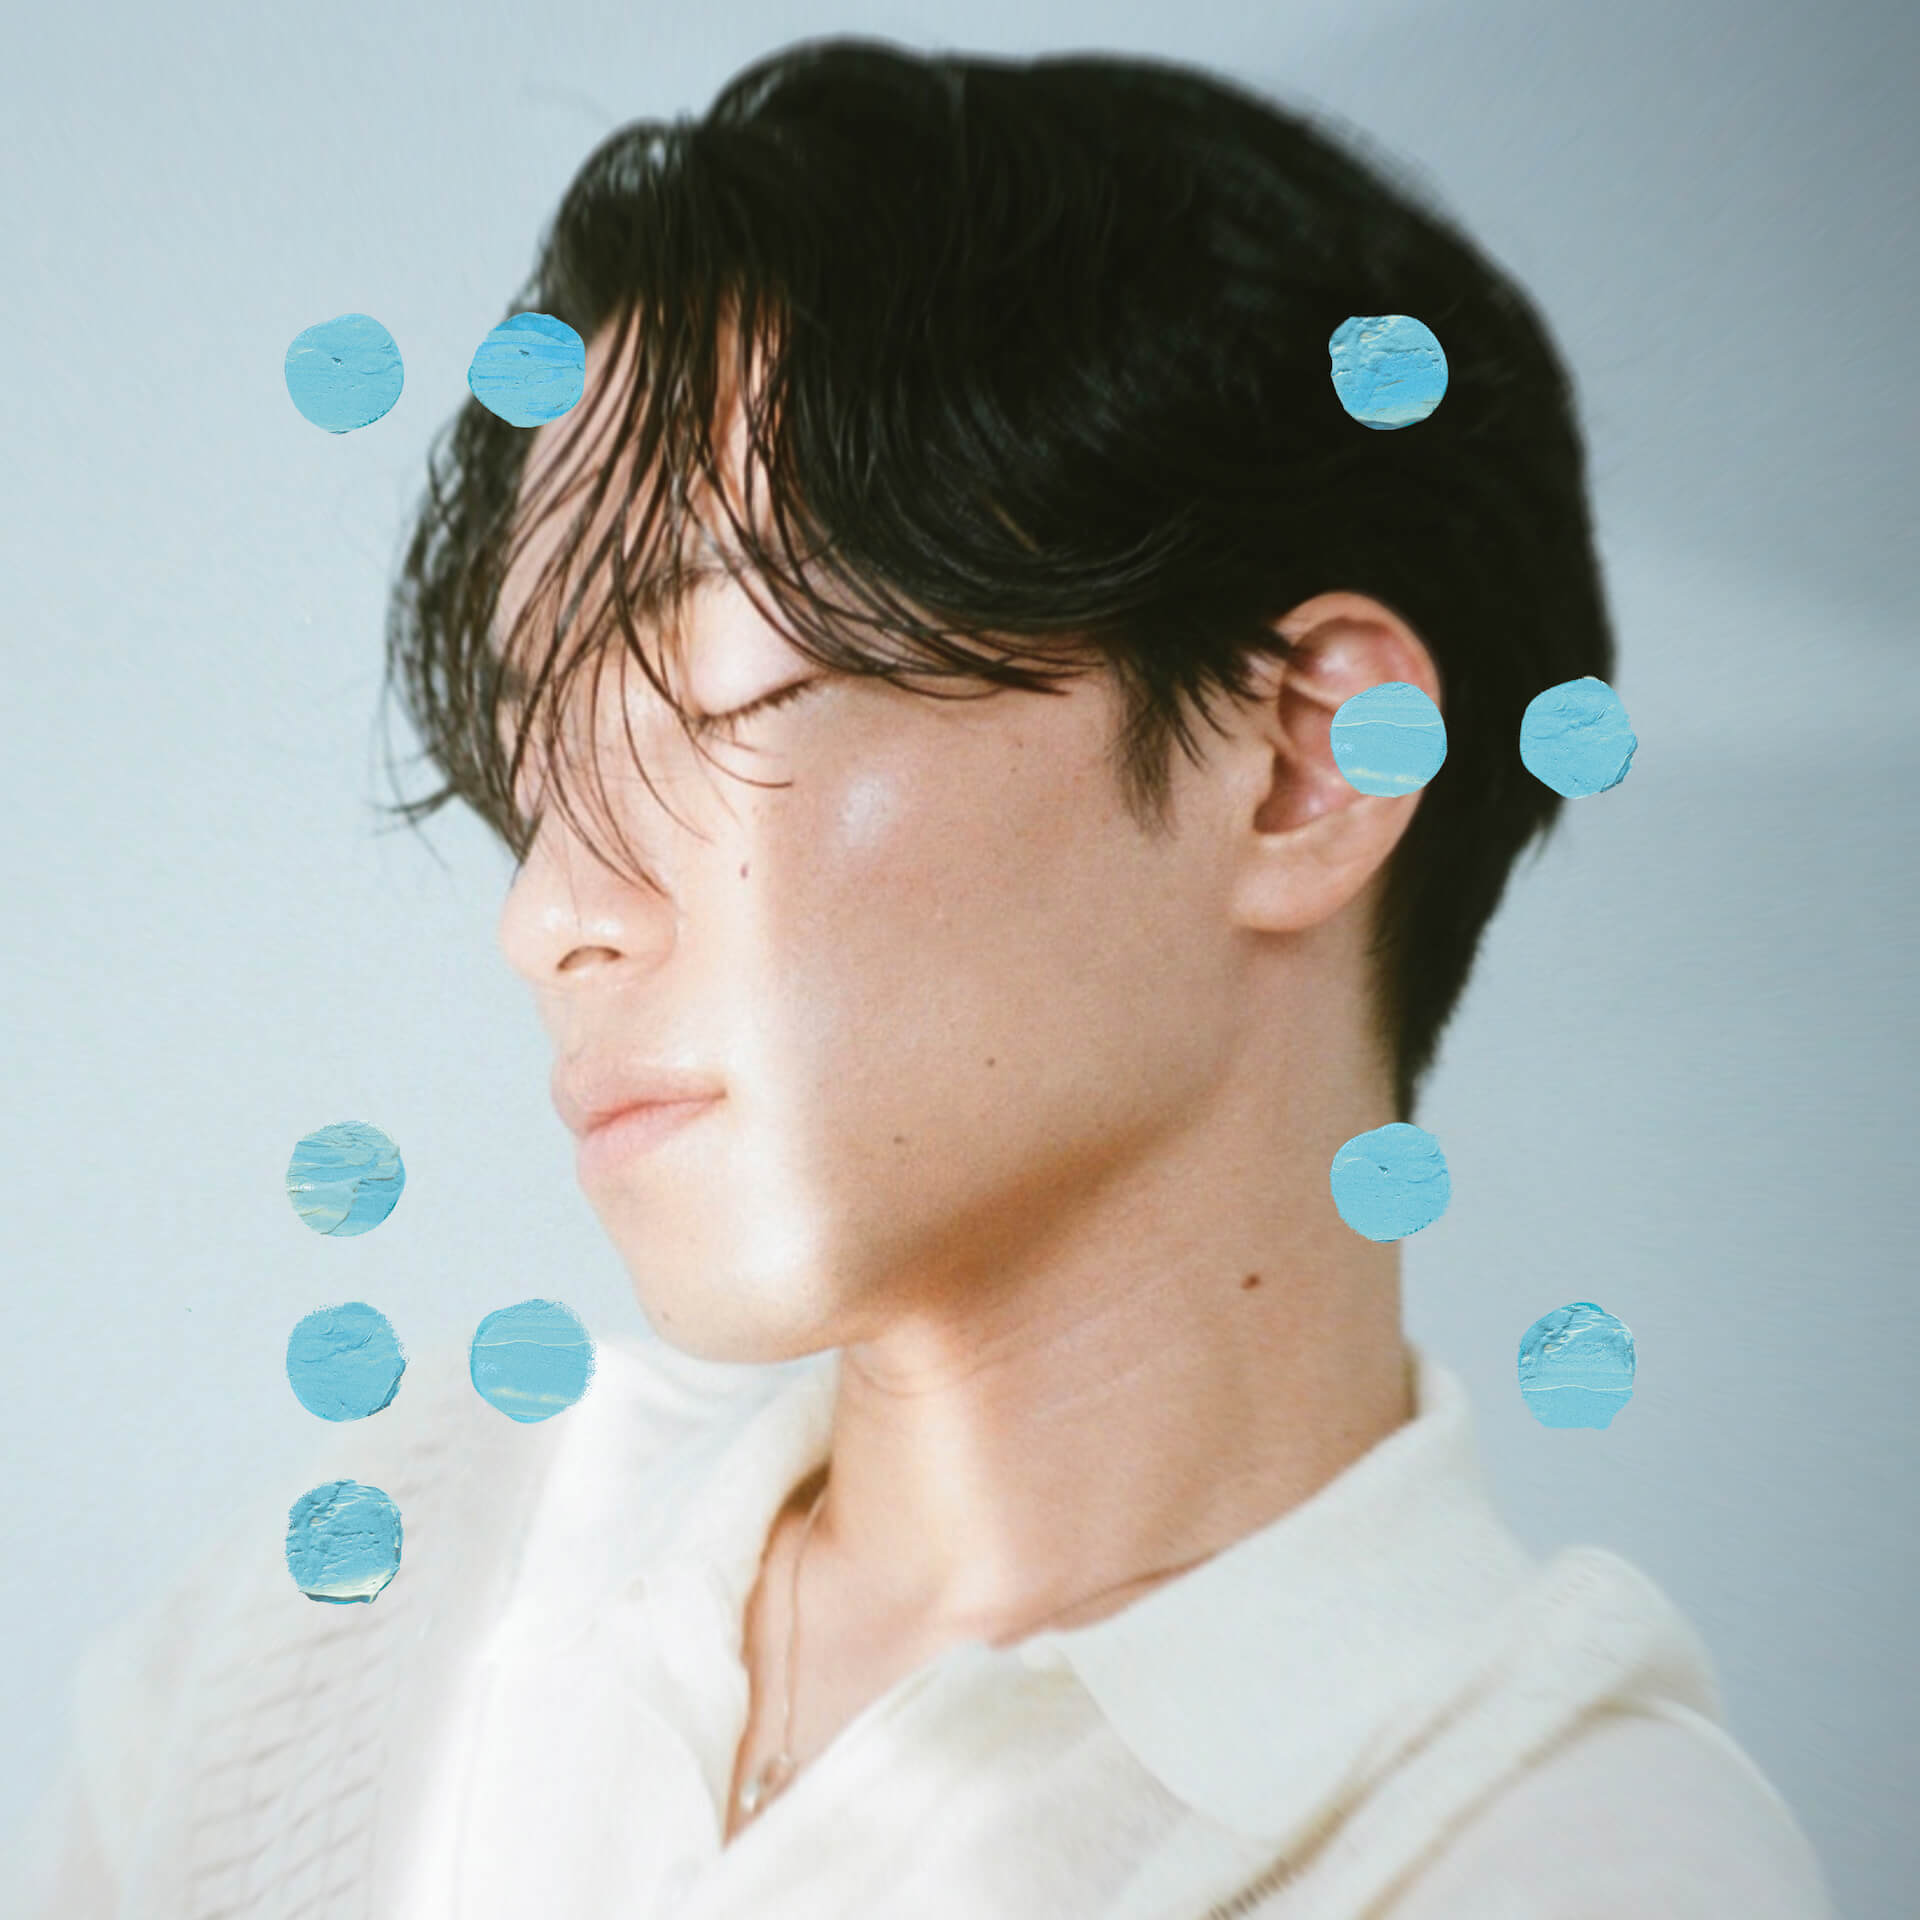 """SIRUPのニューアルバム『cure』よりSUMINとのコラボ曲""""Keep In Touch""""が先行配信決定! music210308_sirup_1"""